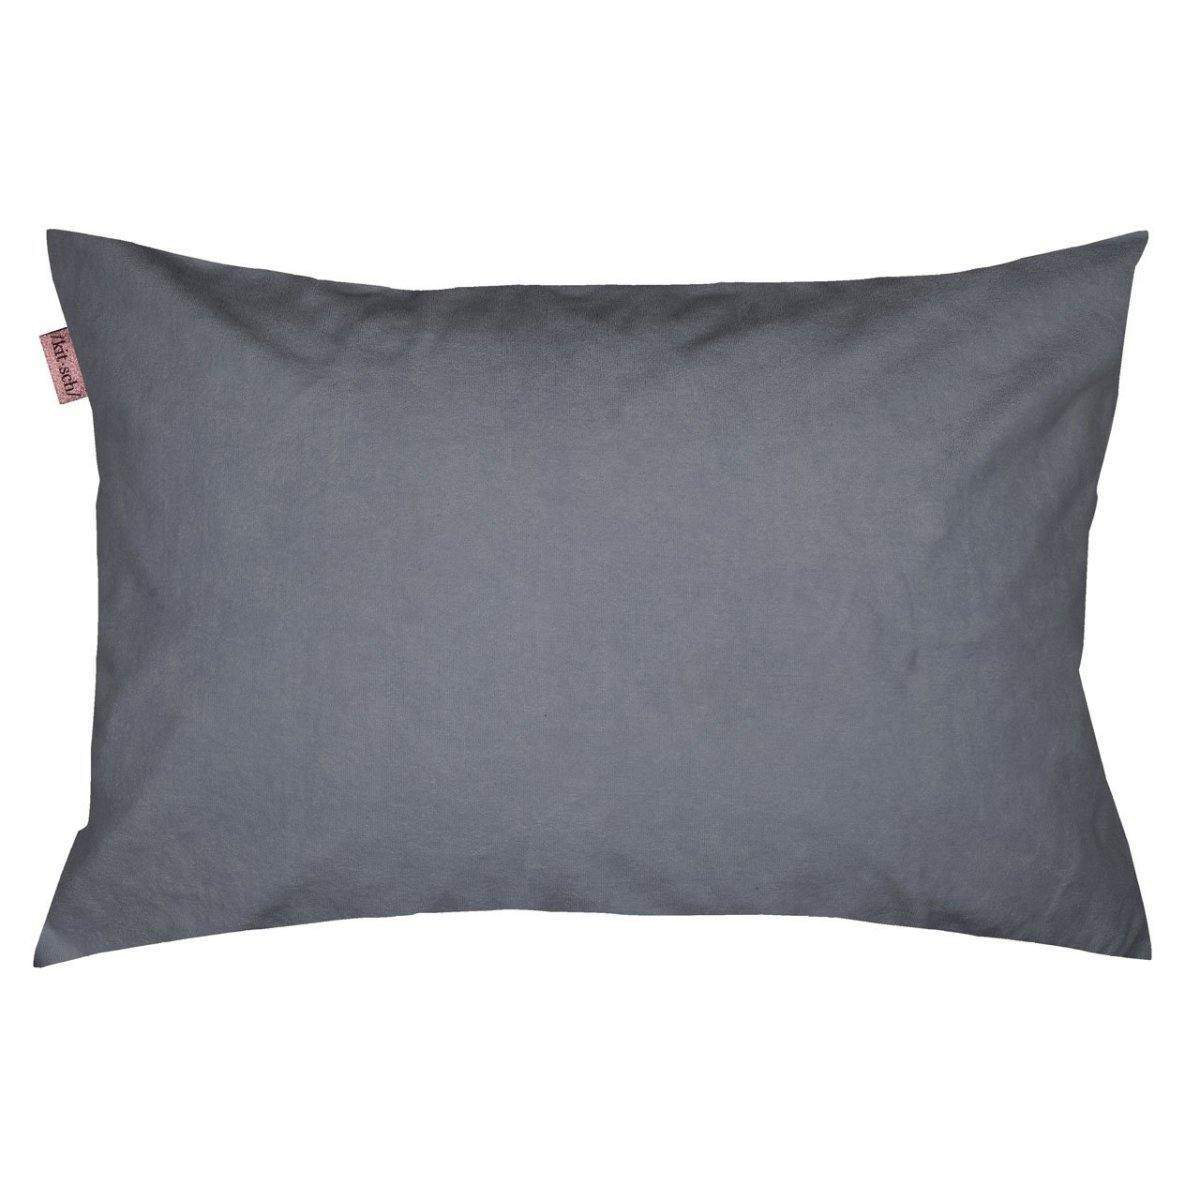 Towel Pillow Cover - Charcoal - KITSCH